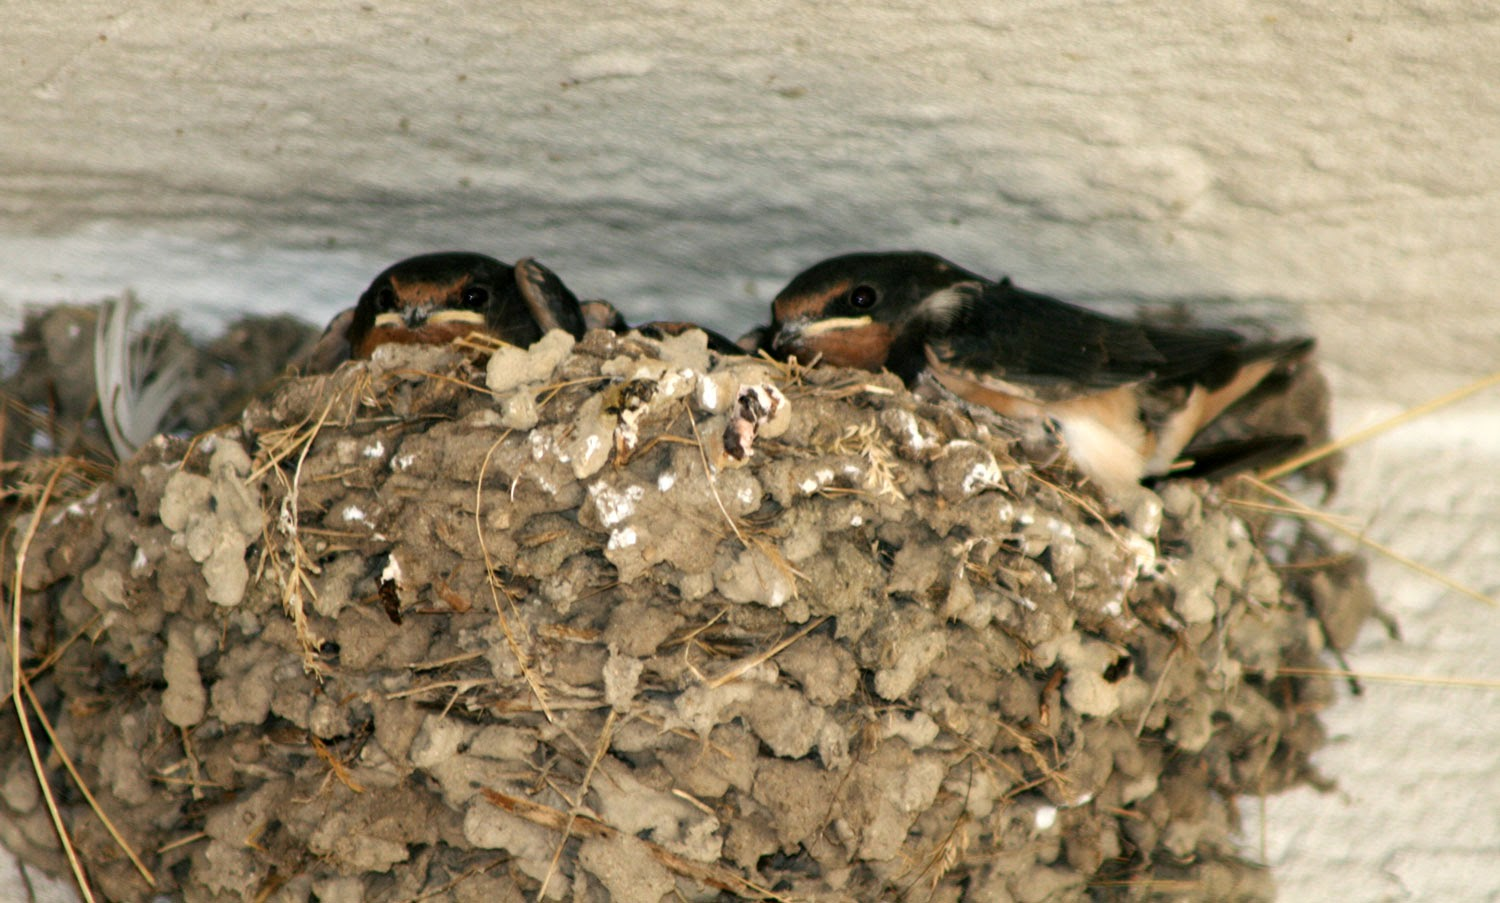 Rather large baby swallows